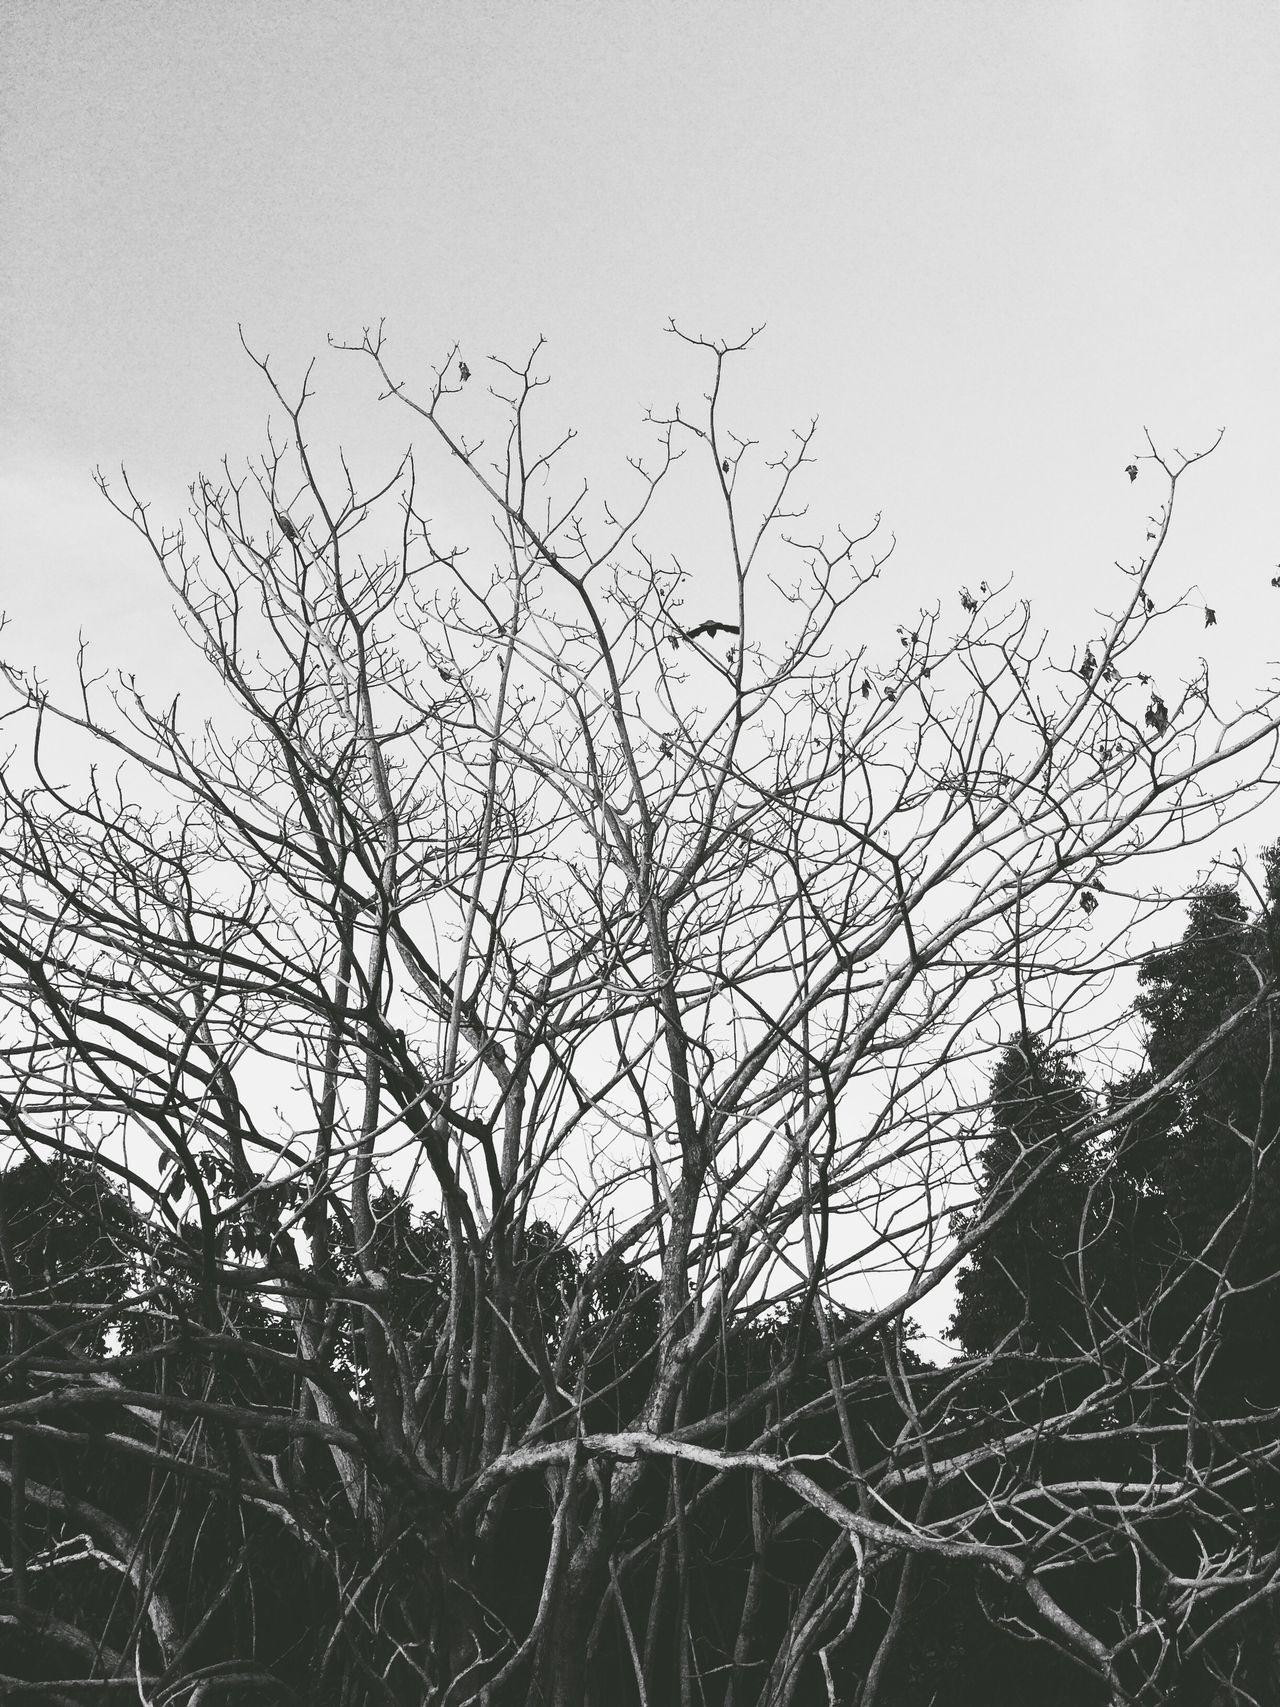 Black And White Blackandwhite Nature Tree IPhoneography VSCO Vscocam Silhouette Branches Branches And Sky Beauty In Nature Beauty Redefined Minimalism Landscape Eyemphotography